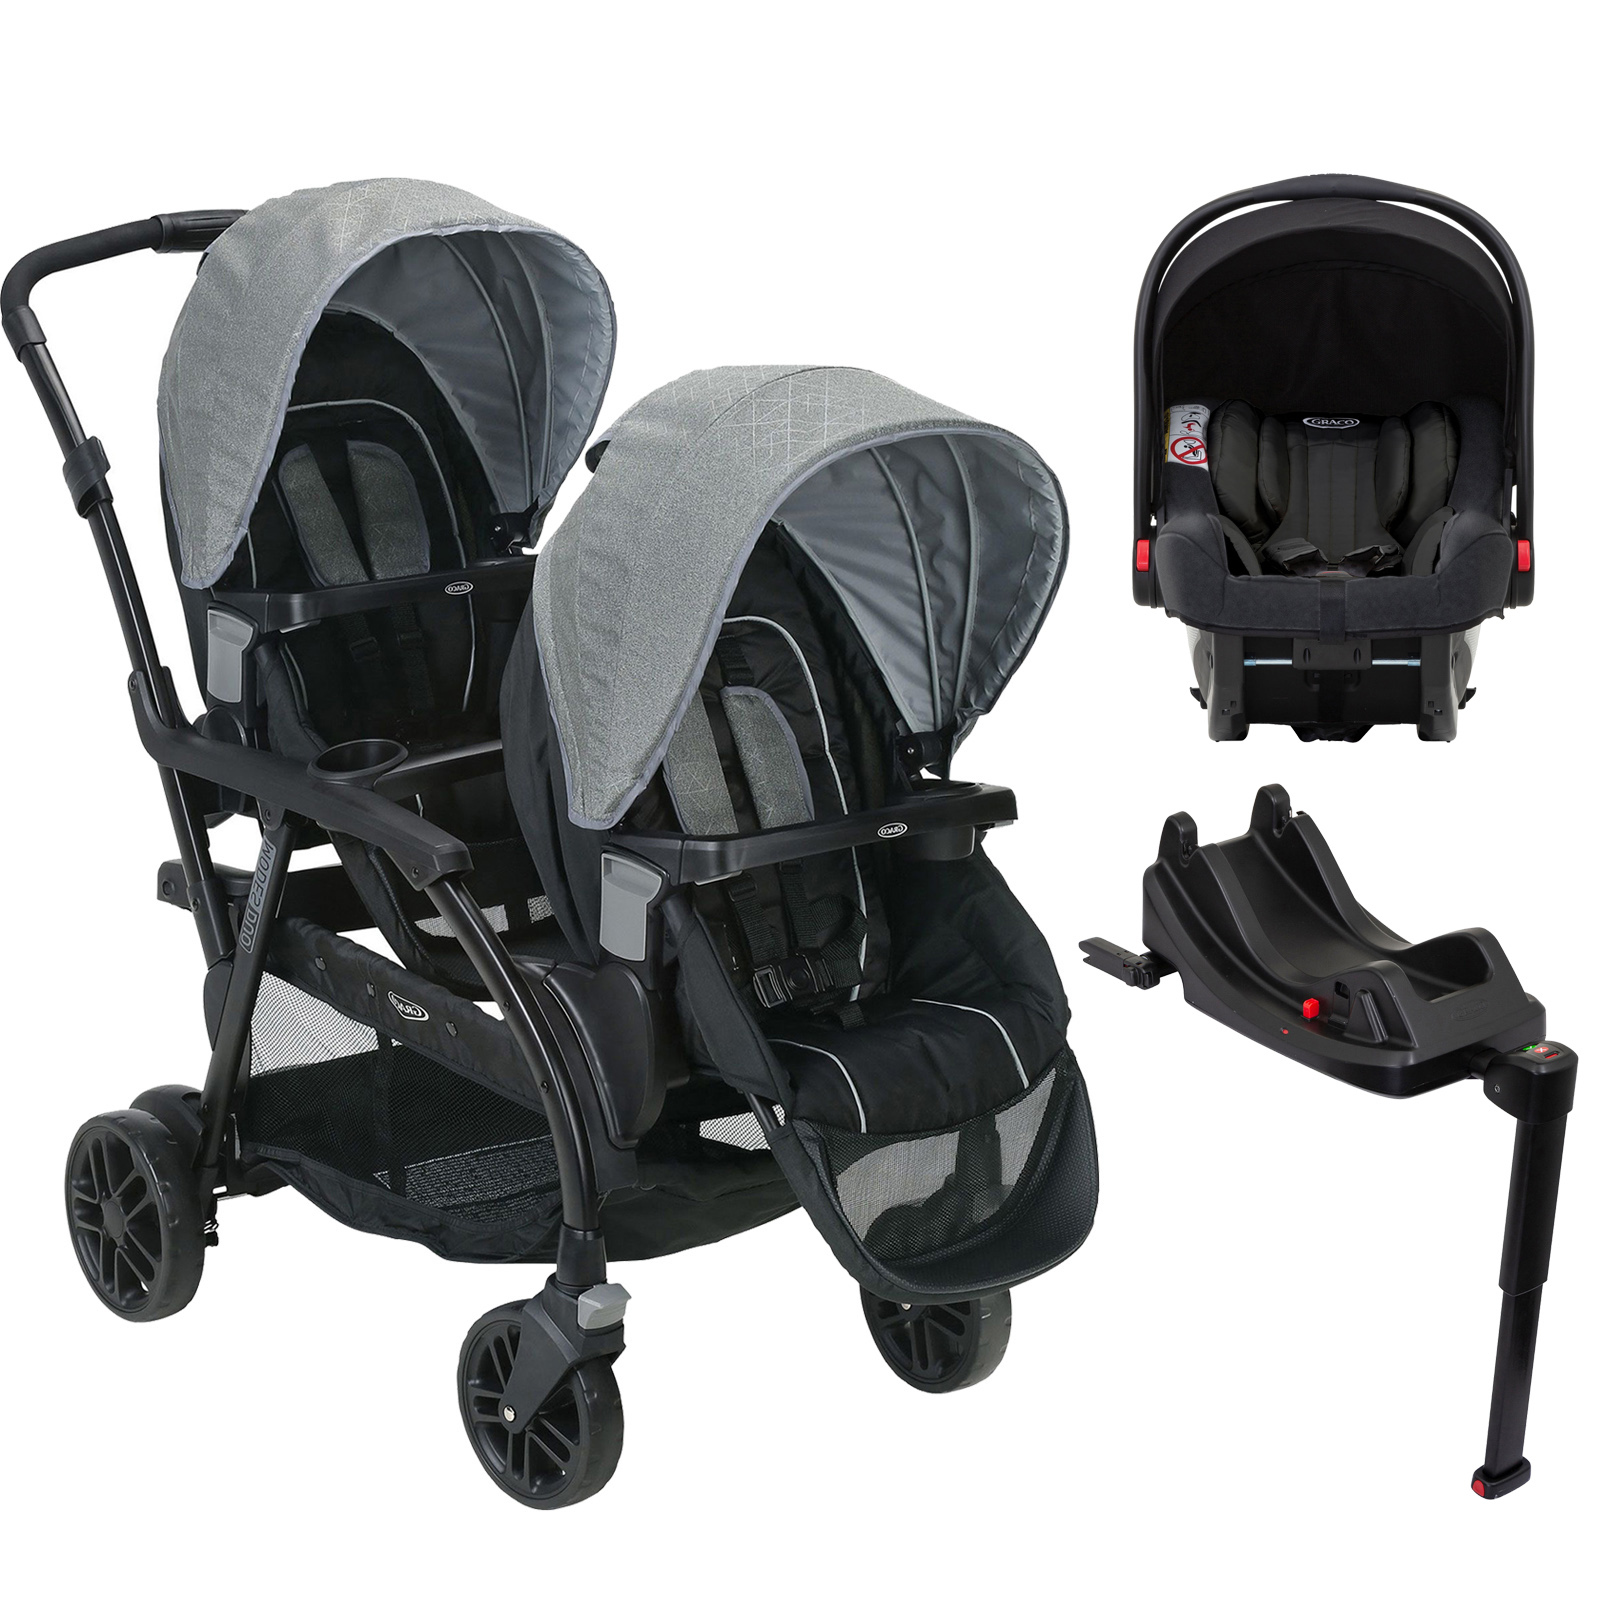 Pram Extra Seat Graco Modes Duo Tandem Double Pram Travel System Isize Car